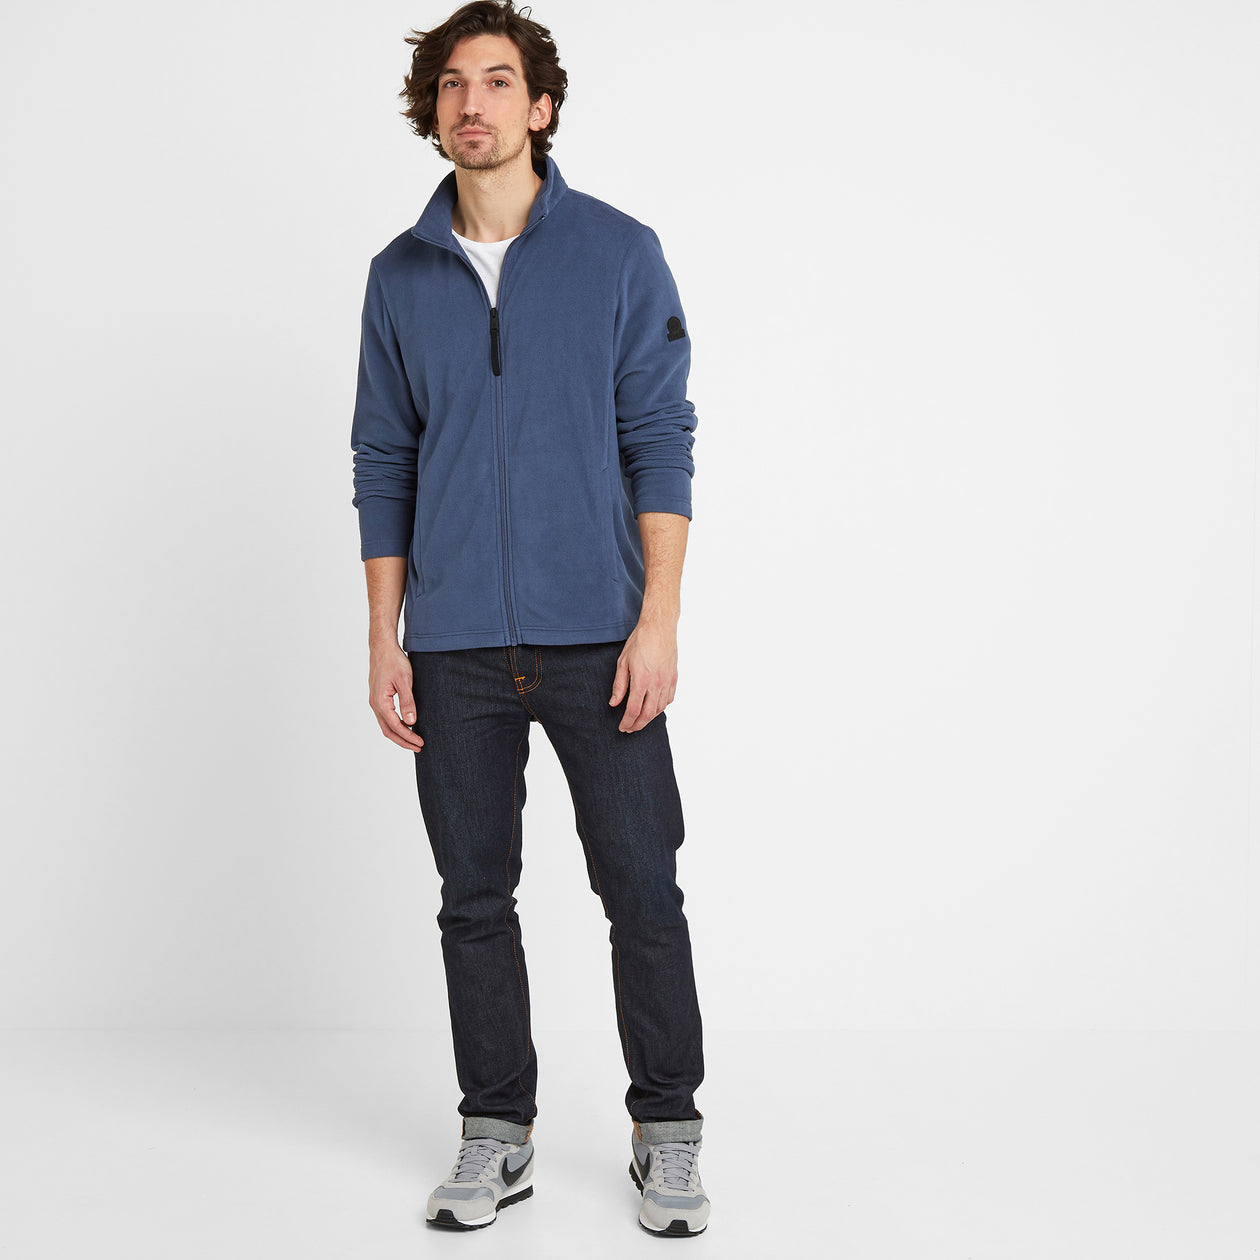 Shire Mens Fleece Jacket - Denim image 4